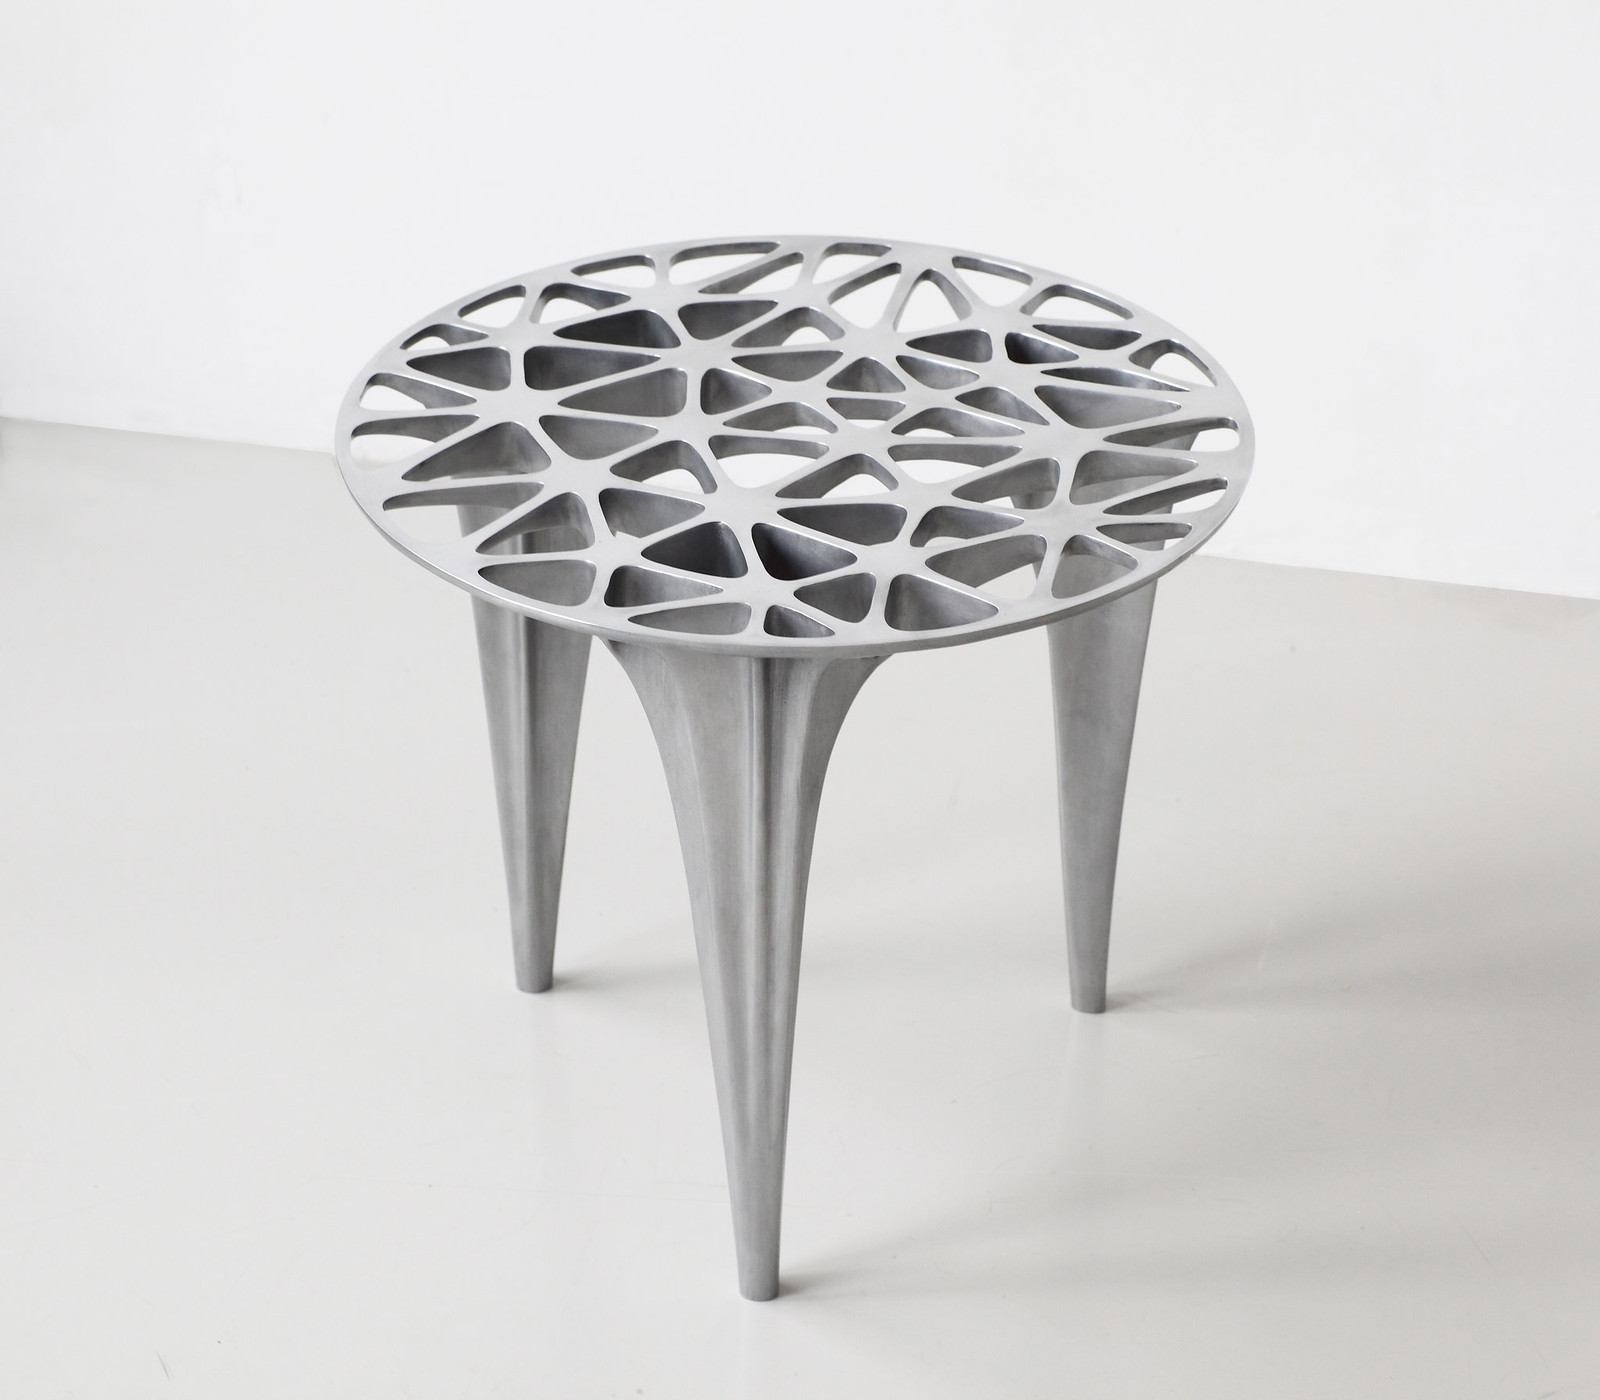 Sedona side table 2014